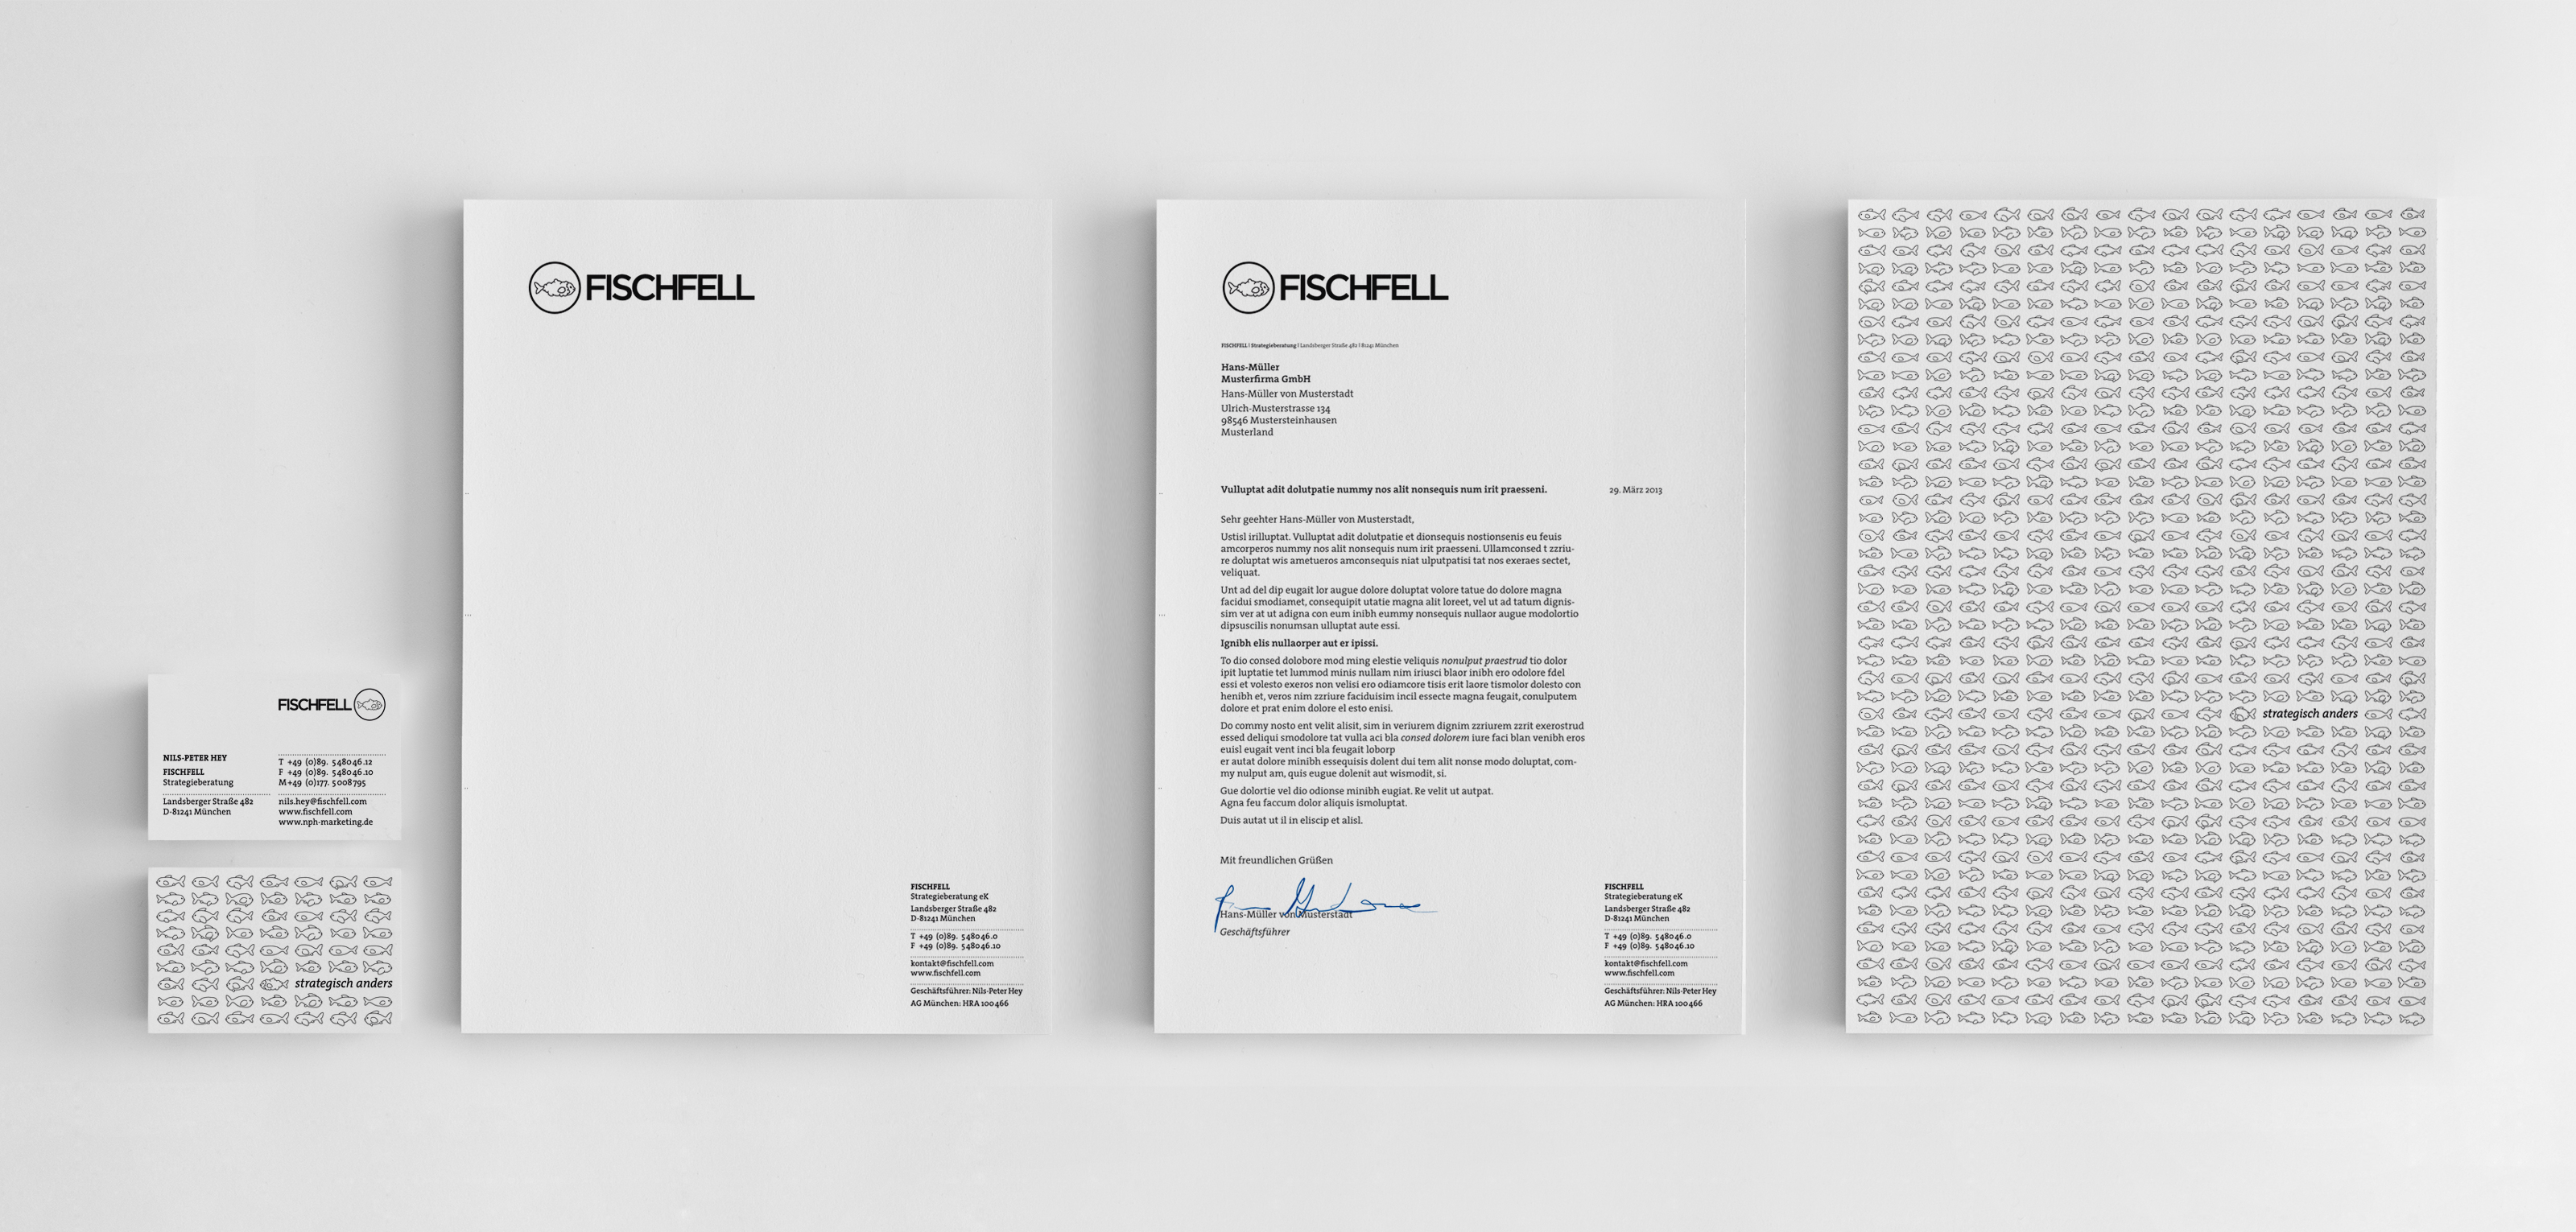 Fischfell_CorporateDesign.jpg?fit=3200%2C1531